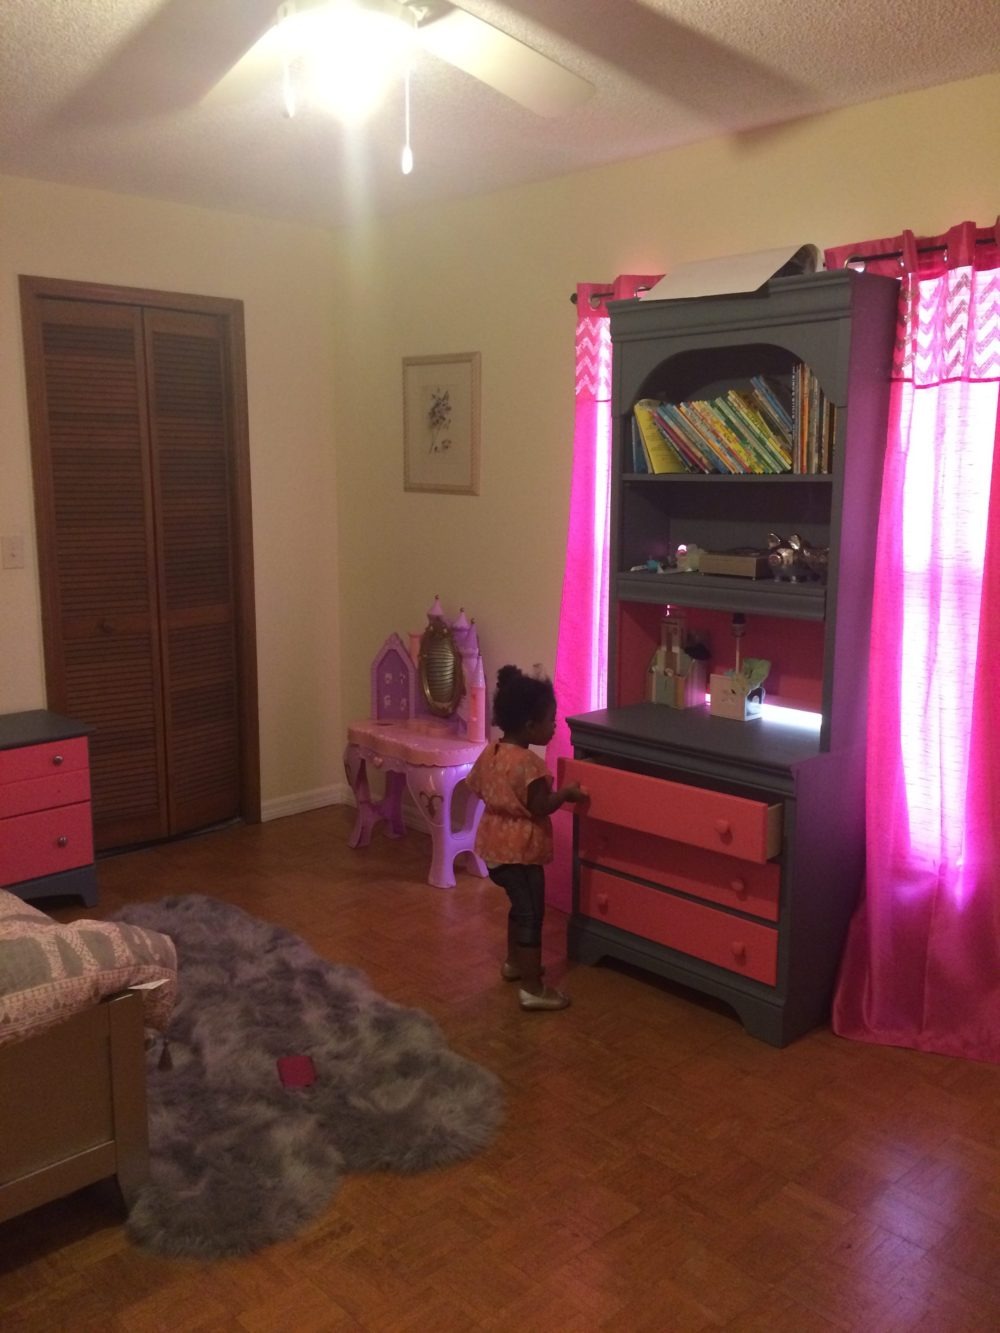 London admiring her Diy furnitures that mommy and daddy did just for her.